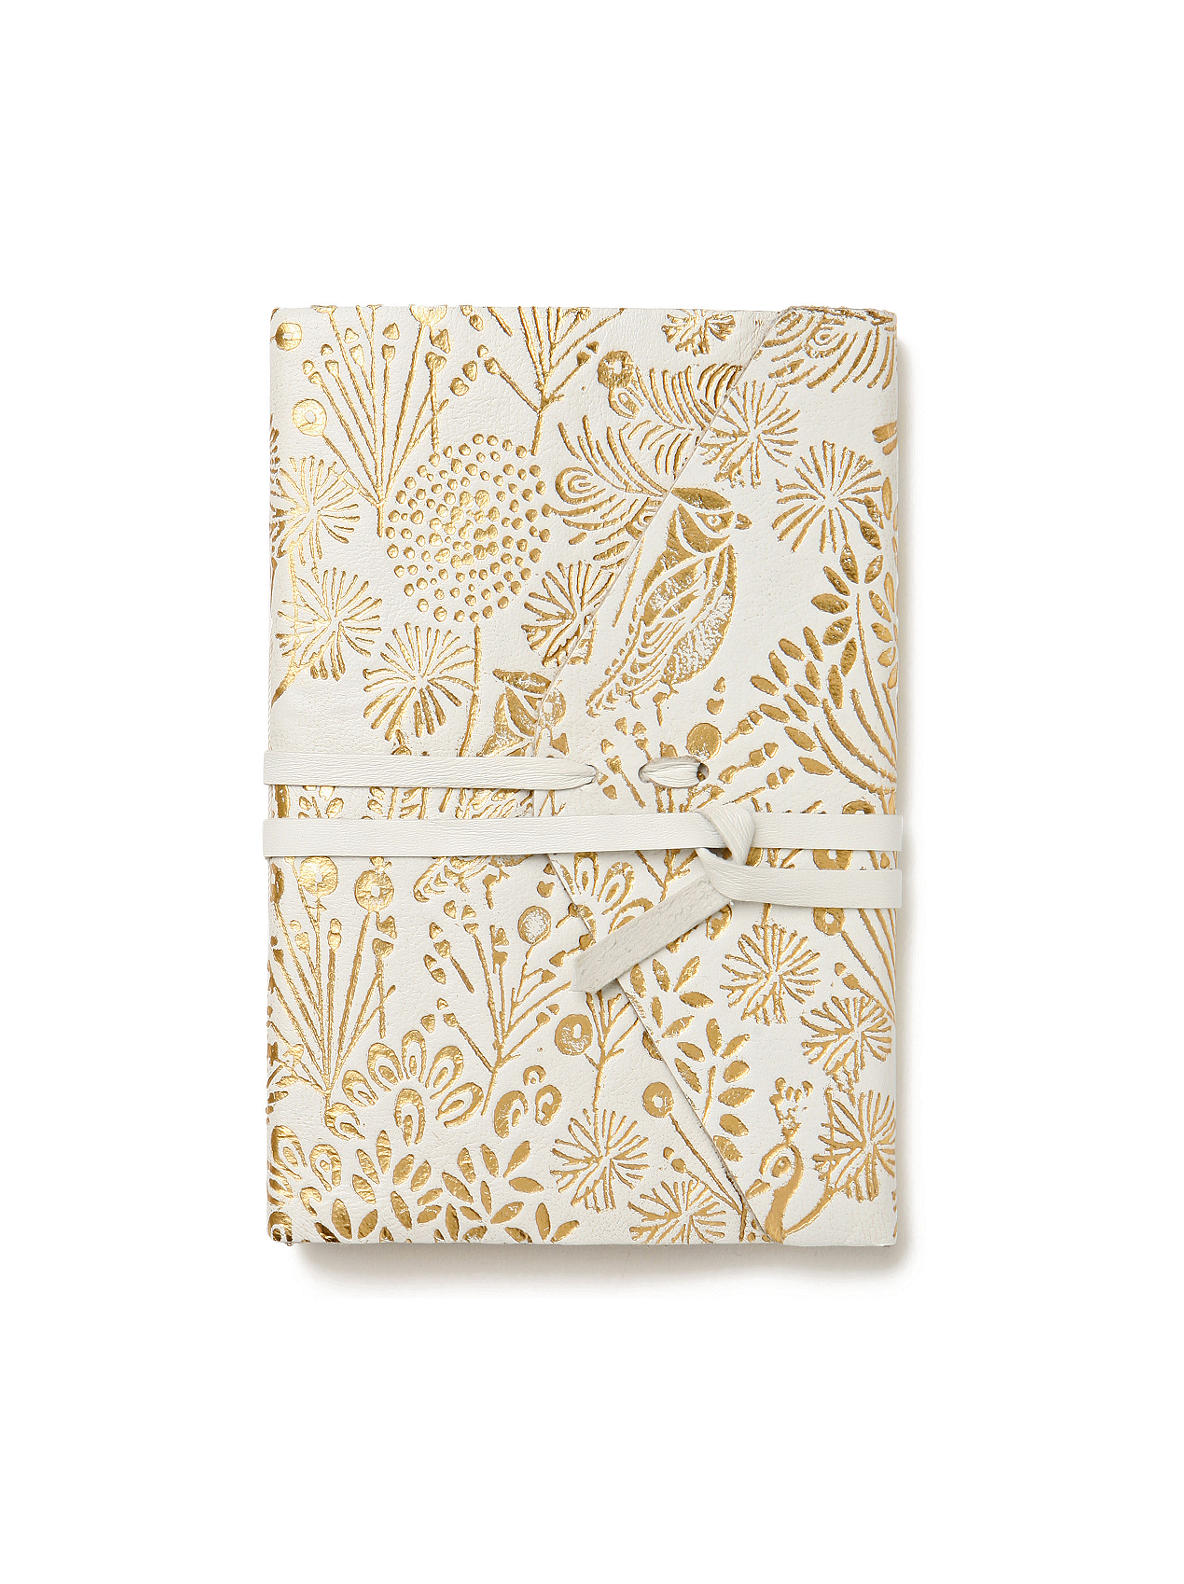 Shimmering Garden Journal Anthropologie com from anthropologie.com